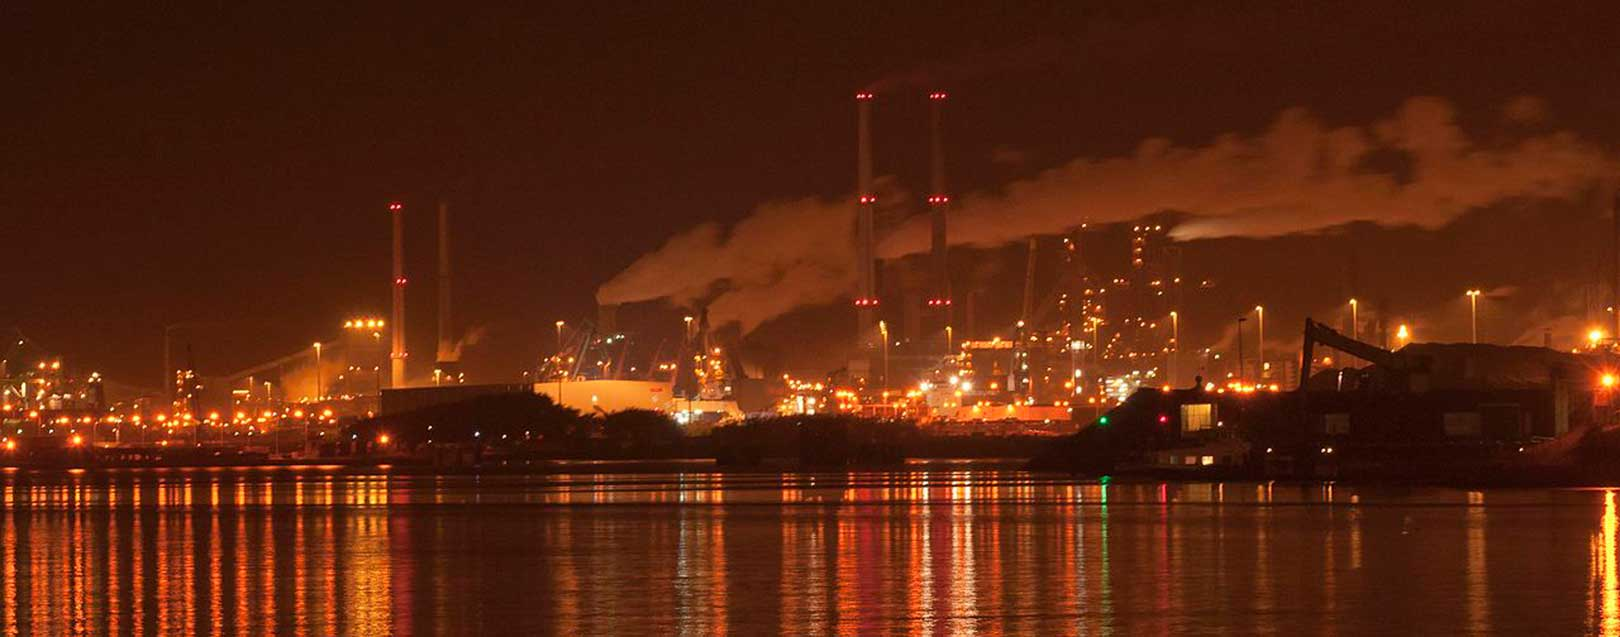 Will improve exports in South East Markets: Tata Steel